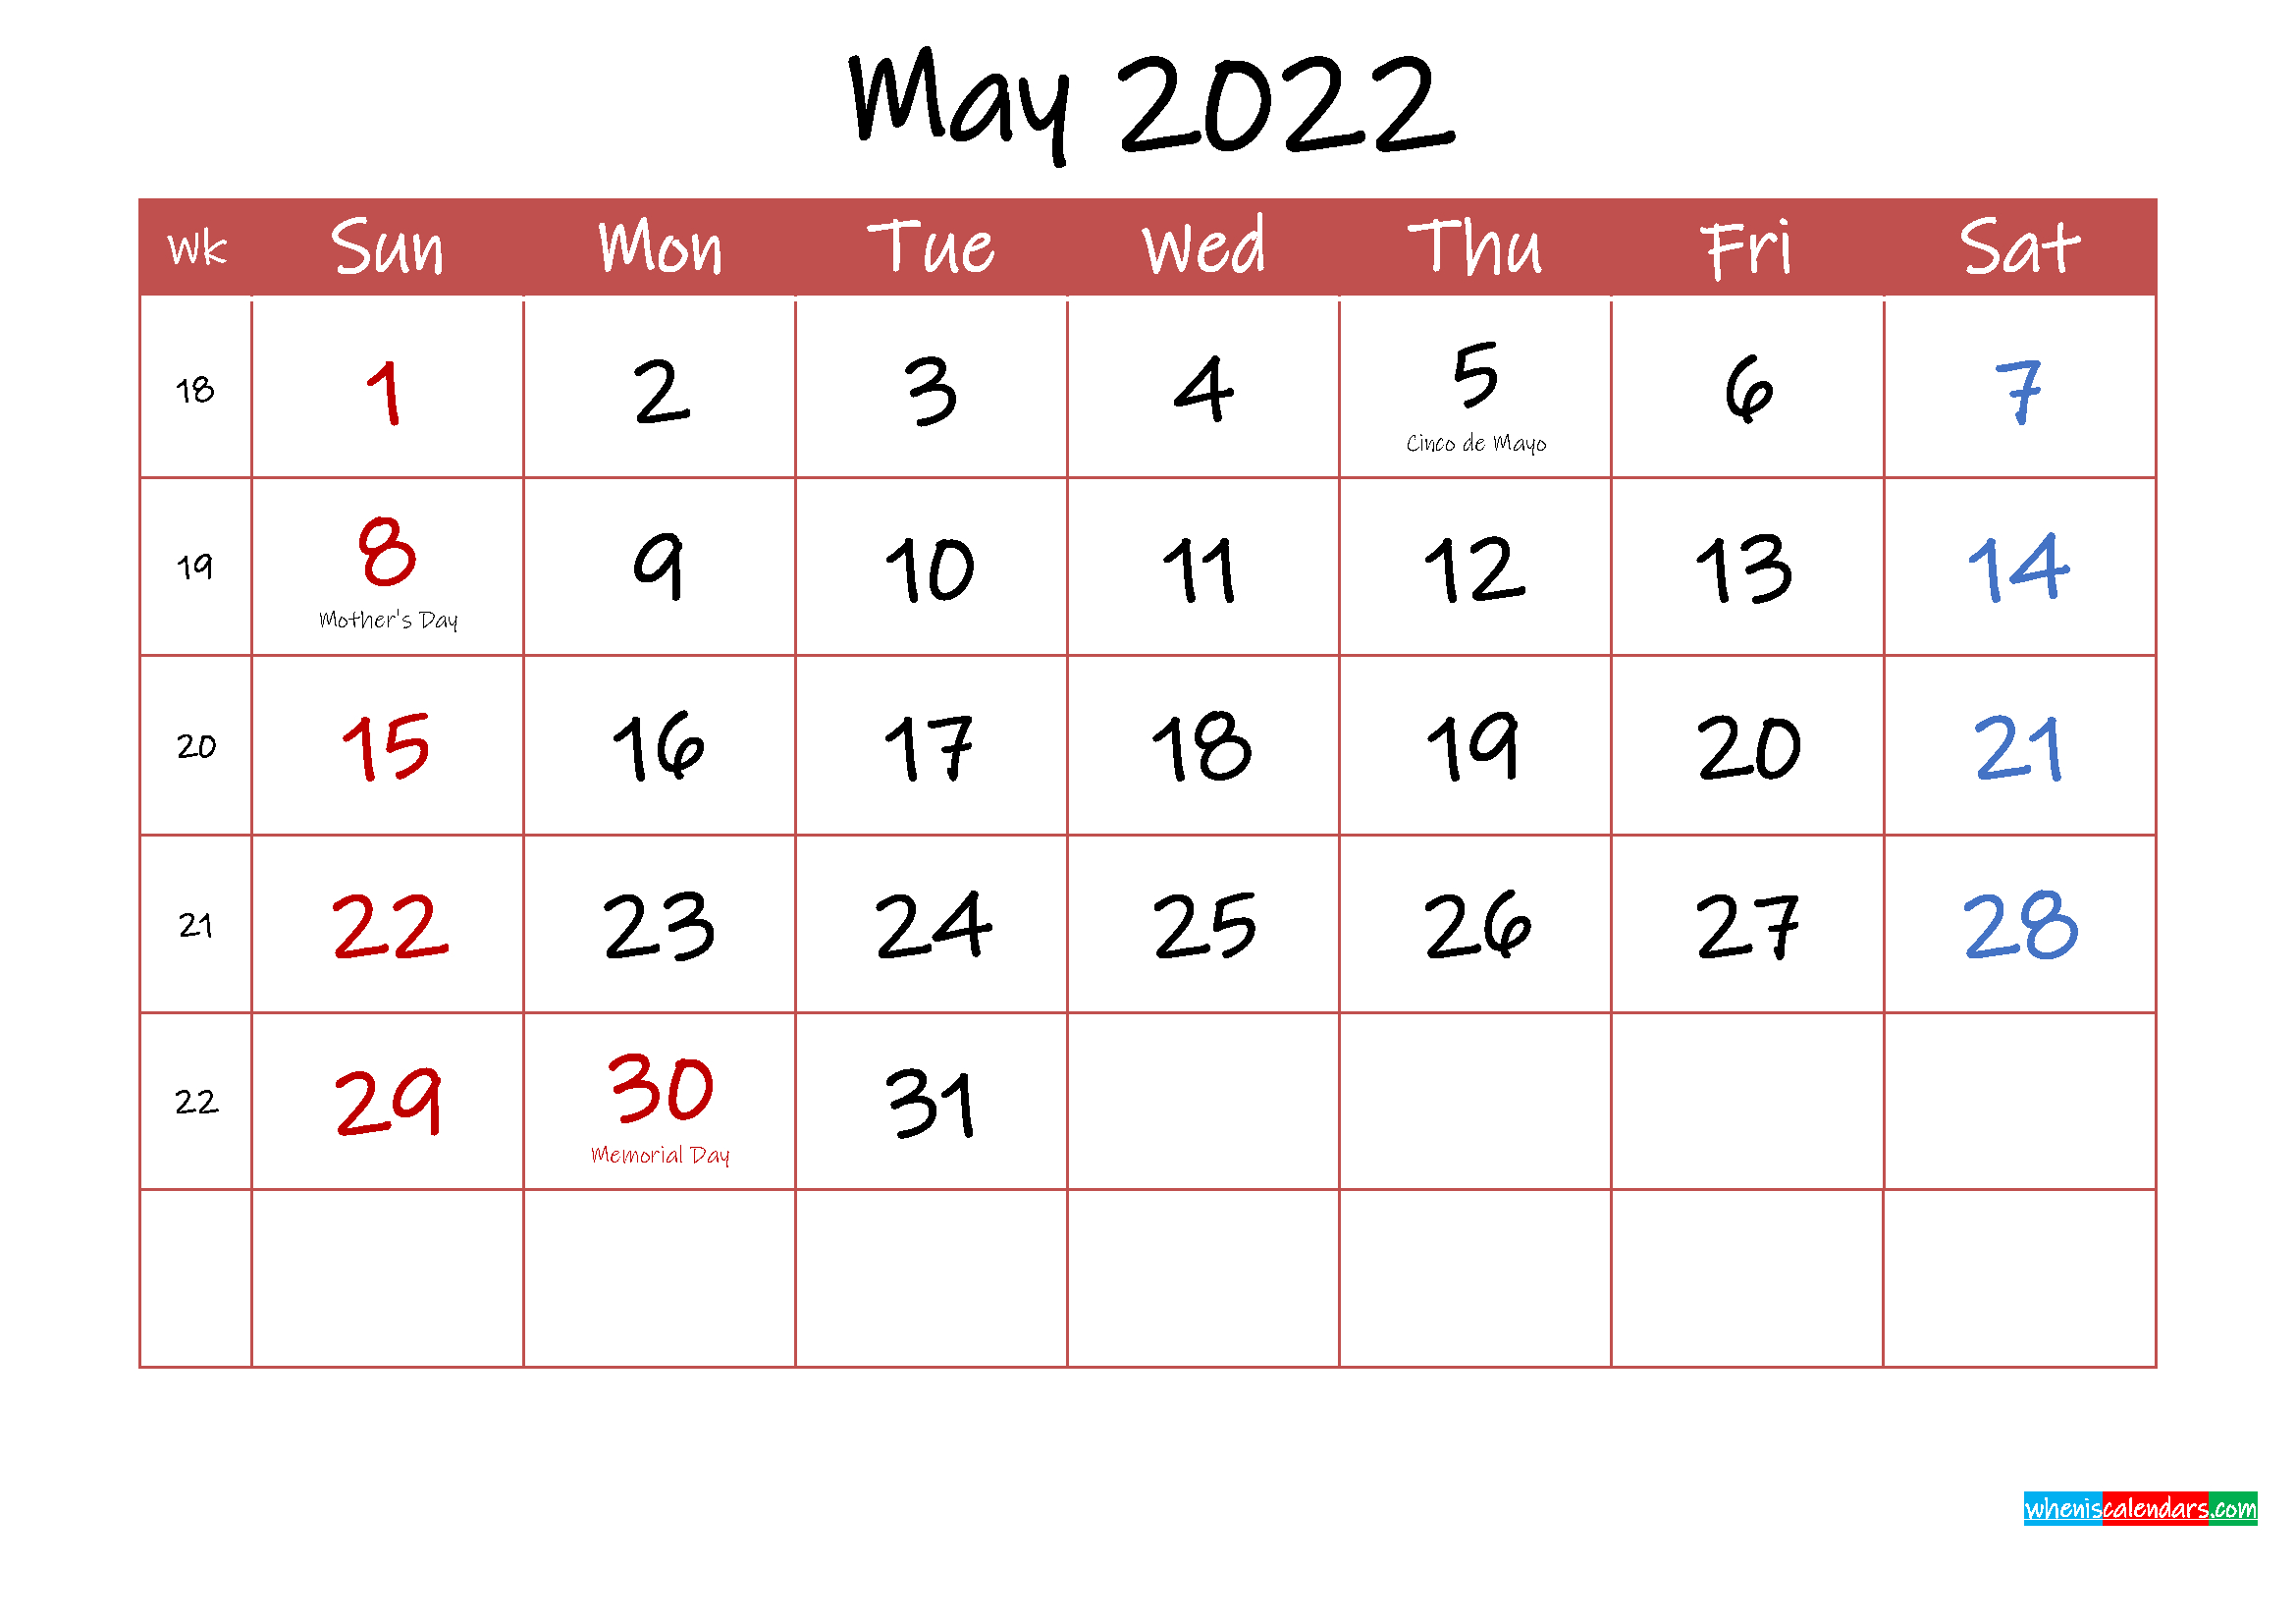 Printable May 2022 Calendar With Holidays - Template Ink22M29 intended for Free Printable 2022 Planner With Holidays Graphics